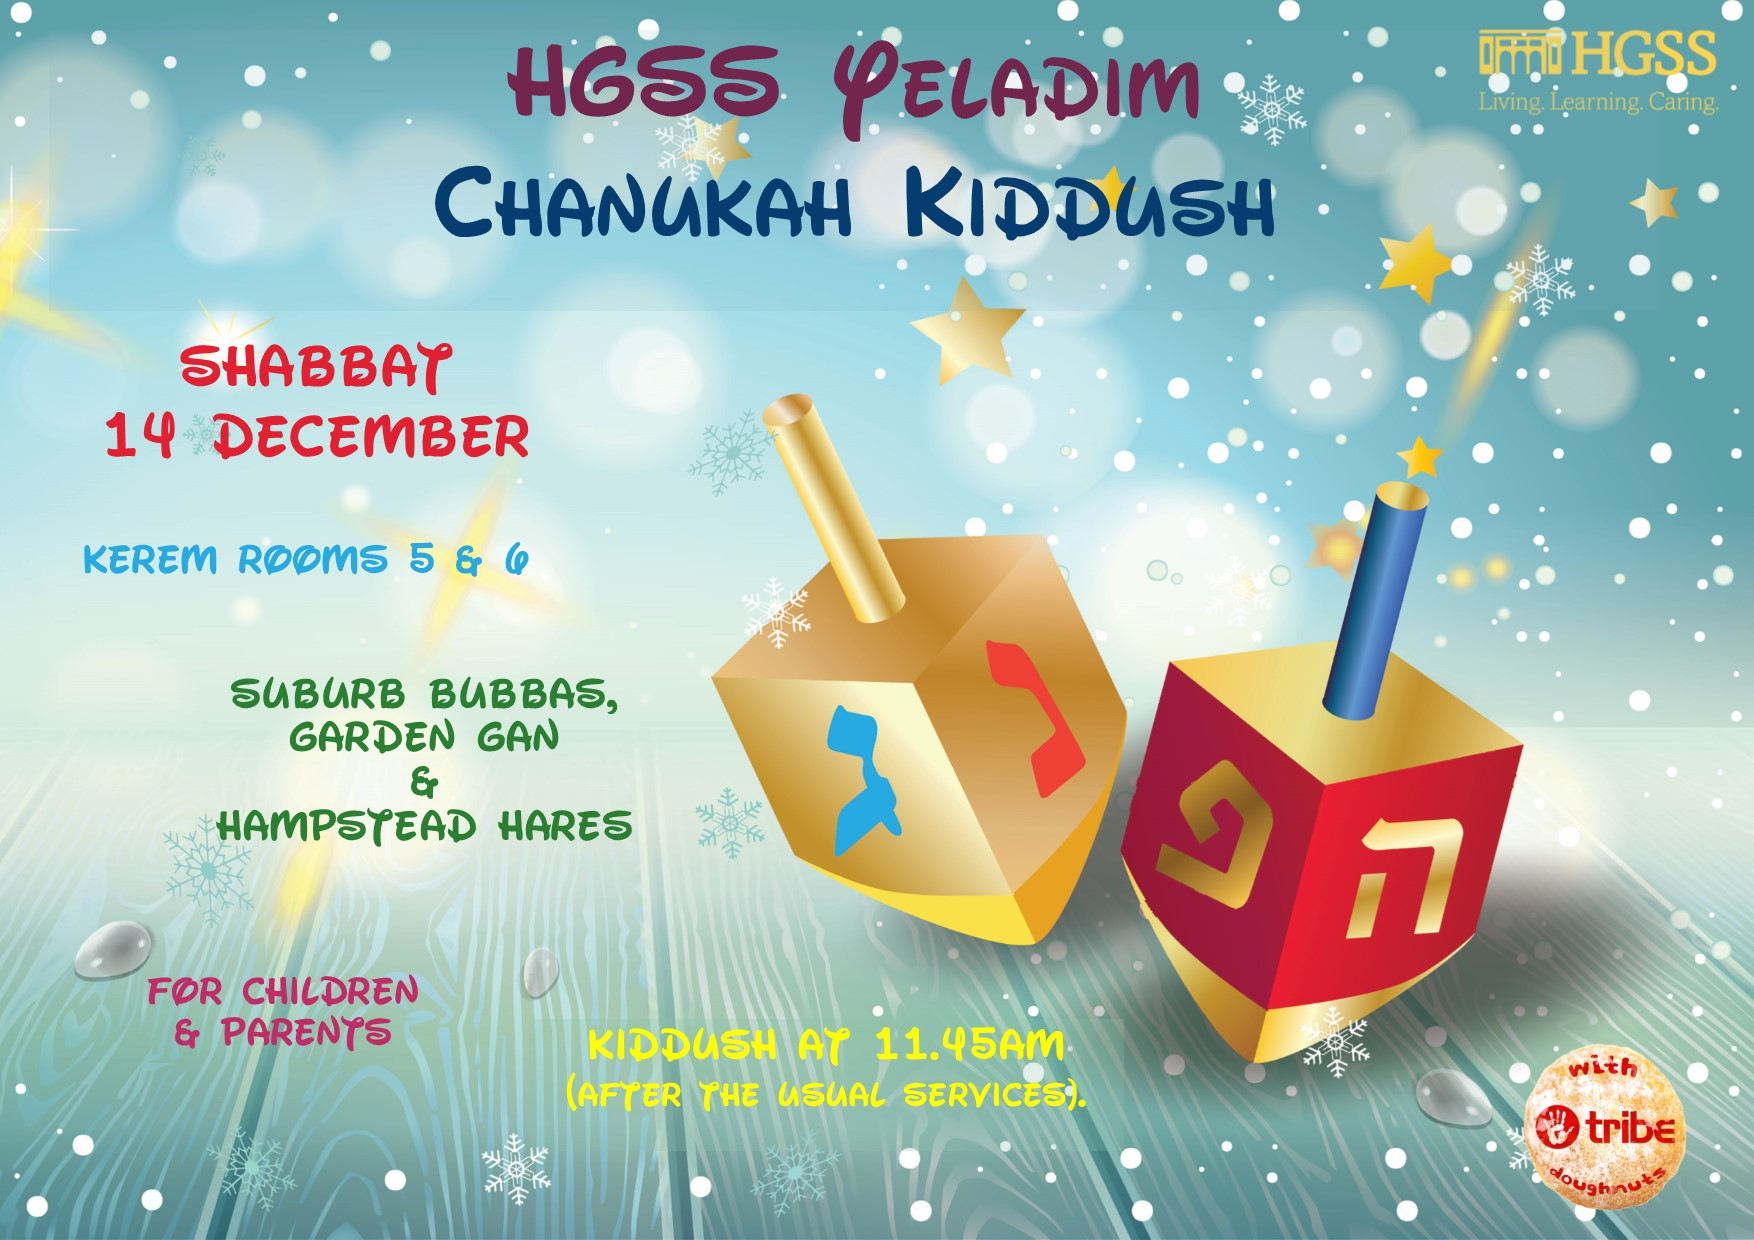 HGSS Yeladim Chanukah Kiddush